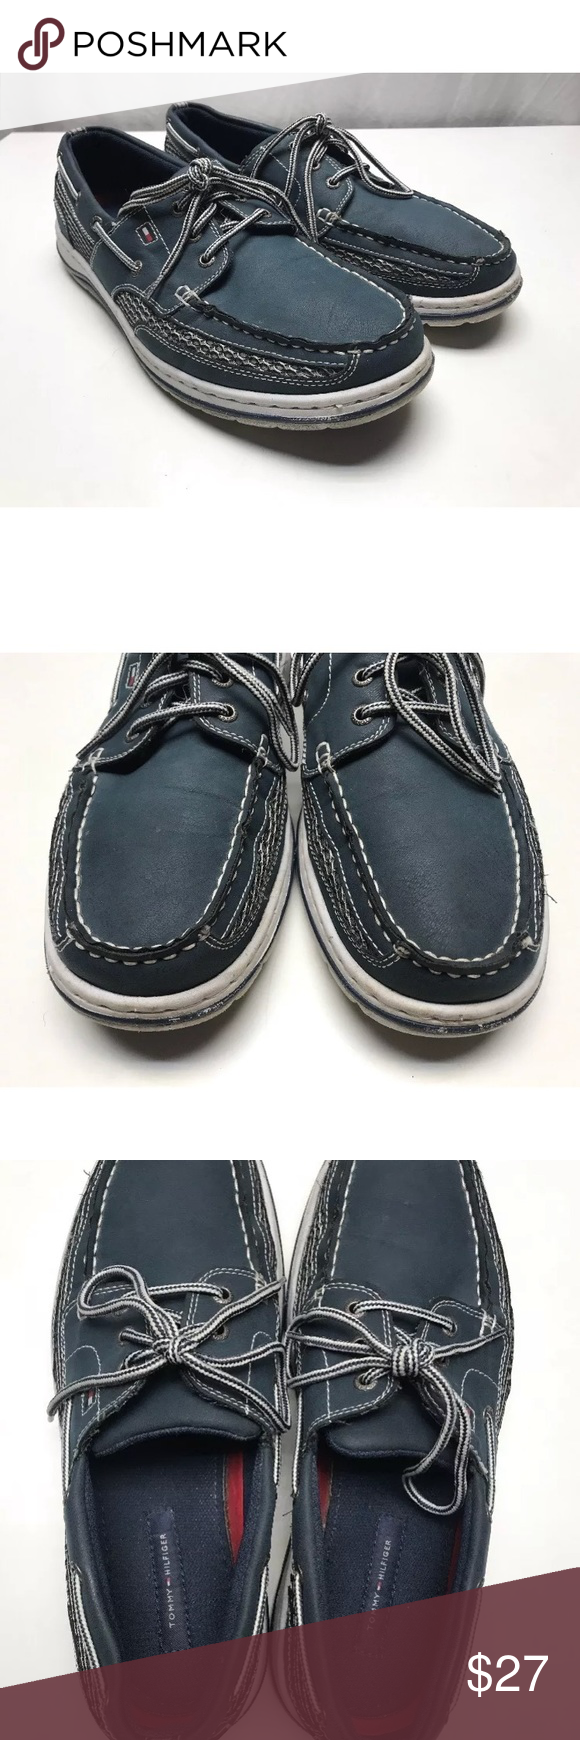 a64460e4e01b5 Mens Tommy Hilfiger Bedford Boat Shoes Loafers 12 Mens Tommy Hilfiger  Bedford Boat Shoes Loafers 12. Nice condition see pics and judge for  yourself!